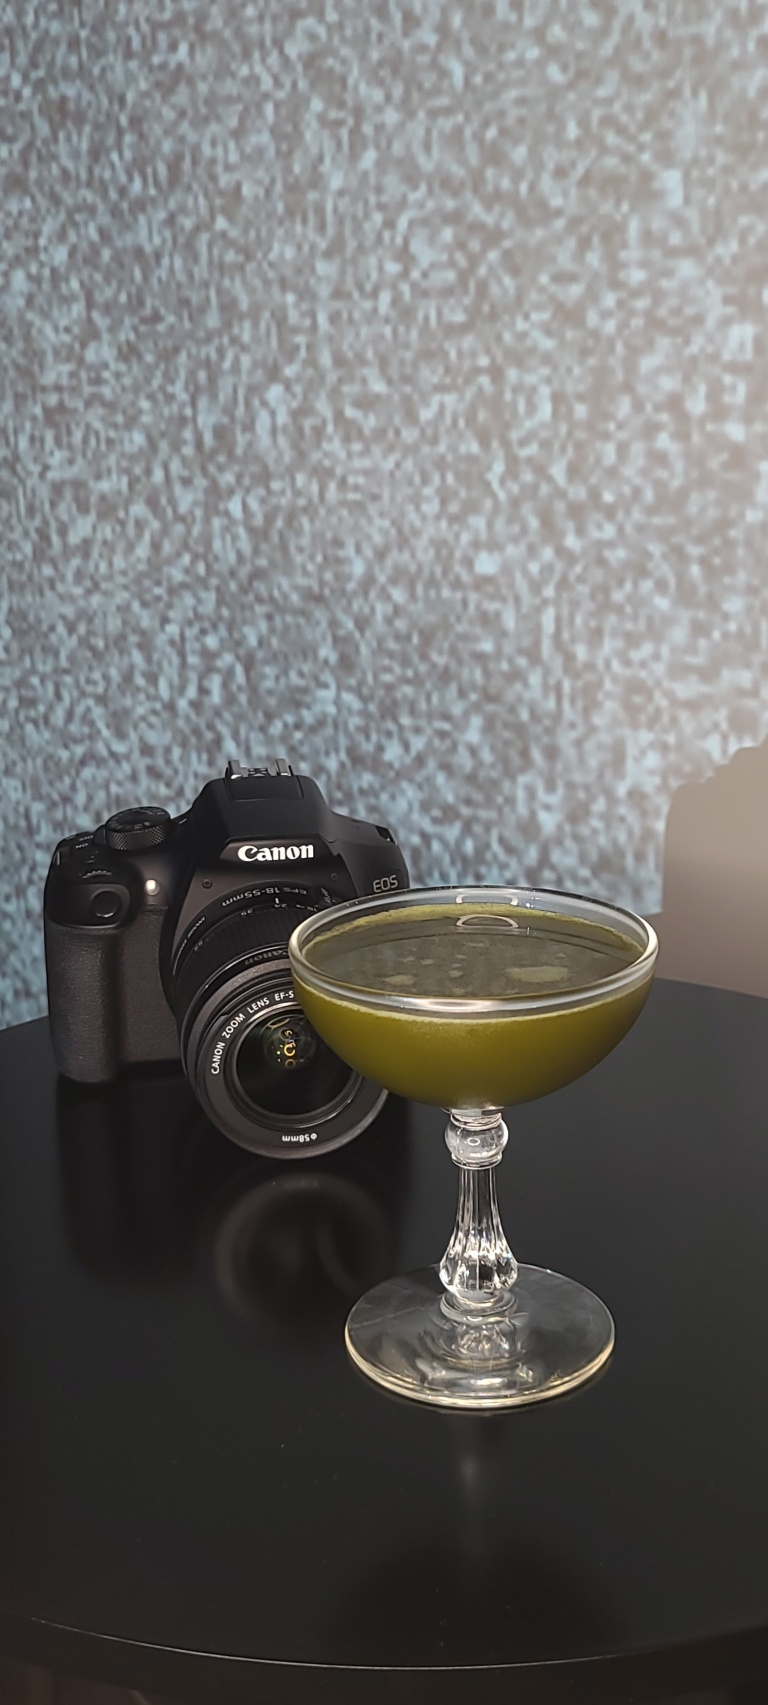 A screen with white noise in the background. A camera sits on a black table. The drink called Well Water sits in a glass. The drink is a nasty tint of green like the well water from the movie The Ring.